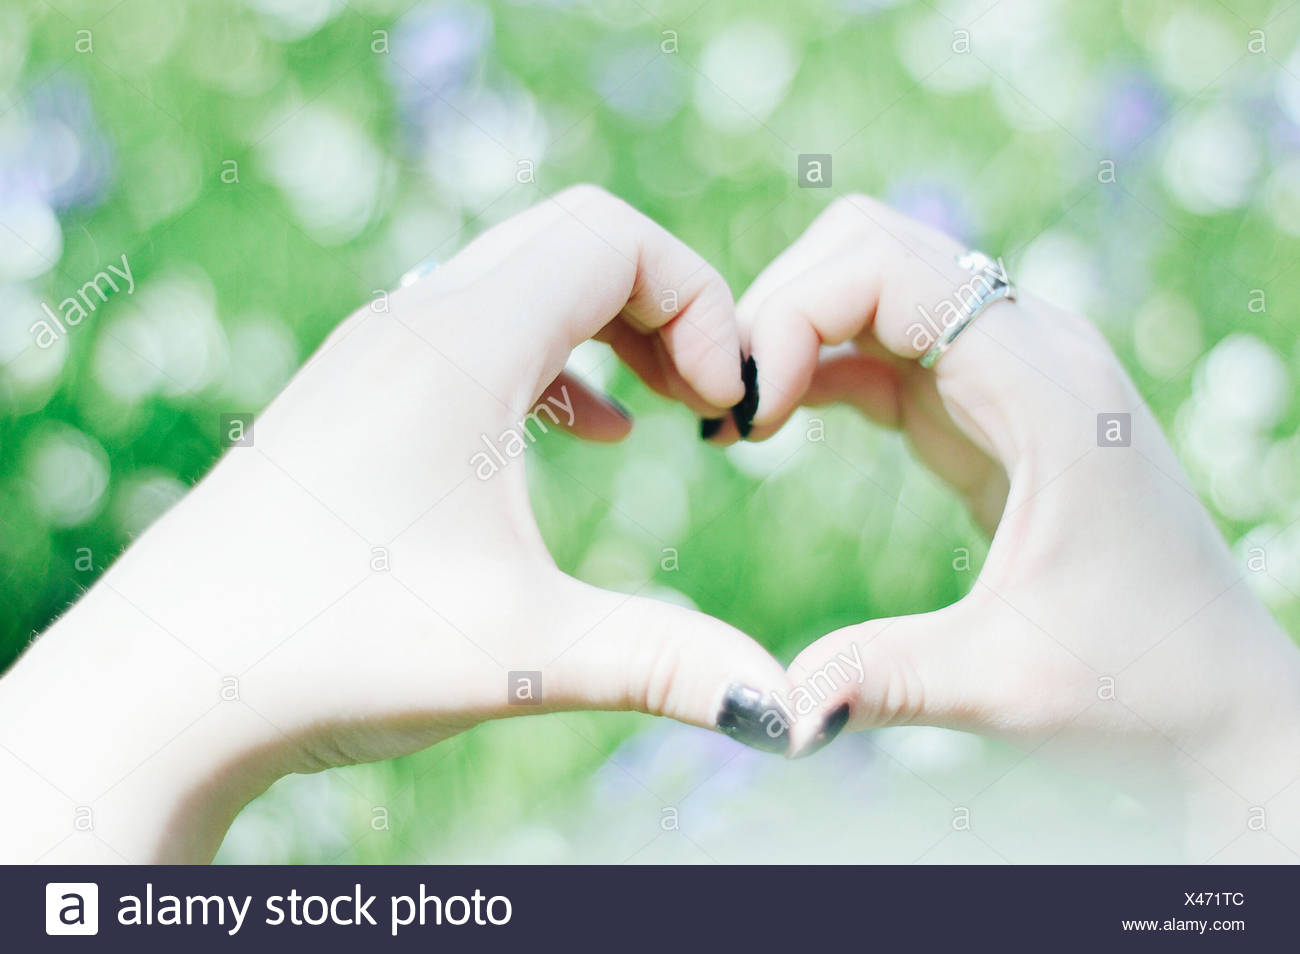 Woman making heart shape with hands - Stock Image